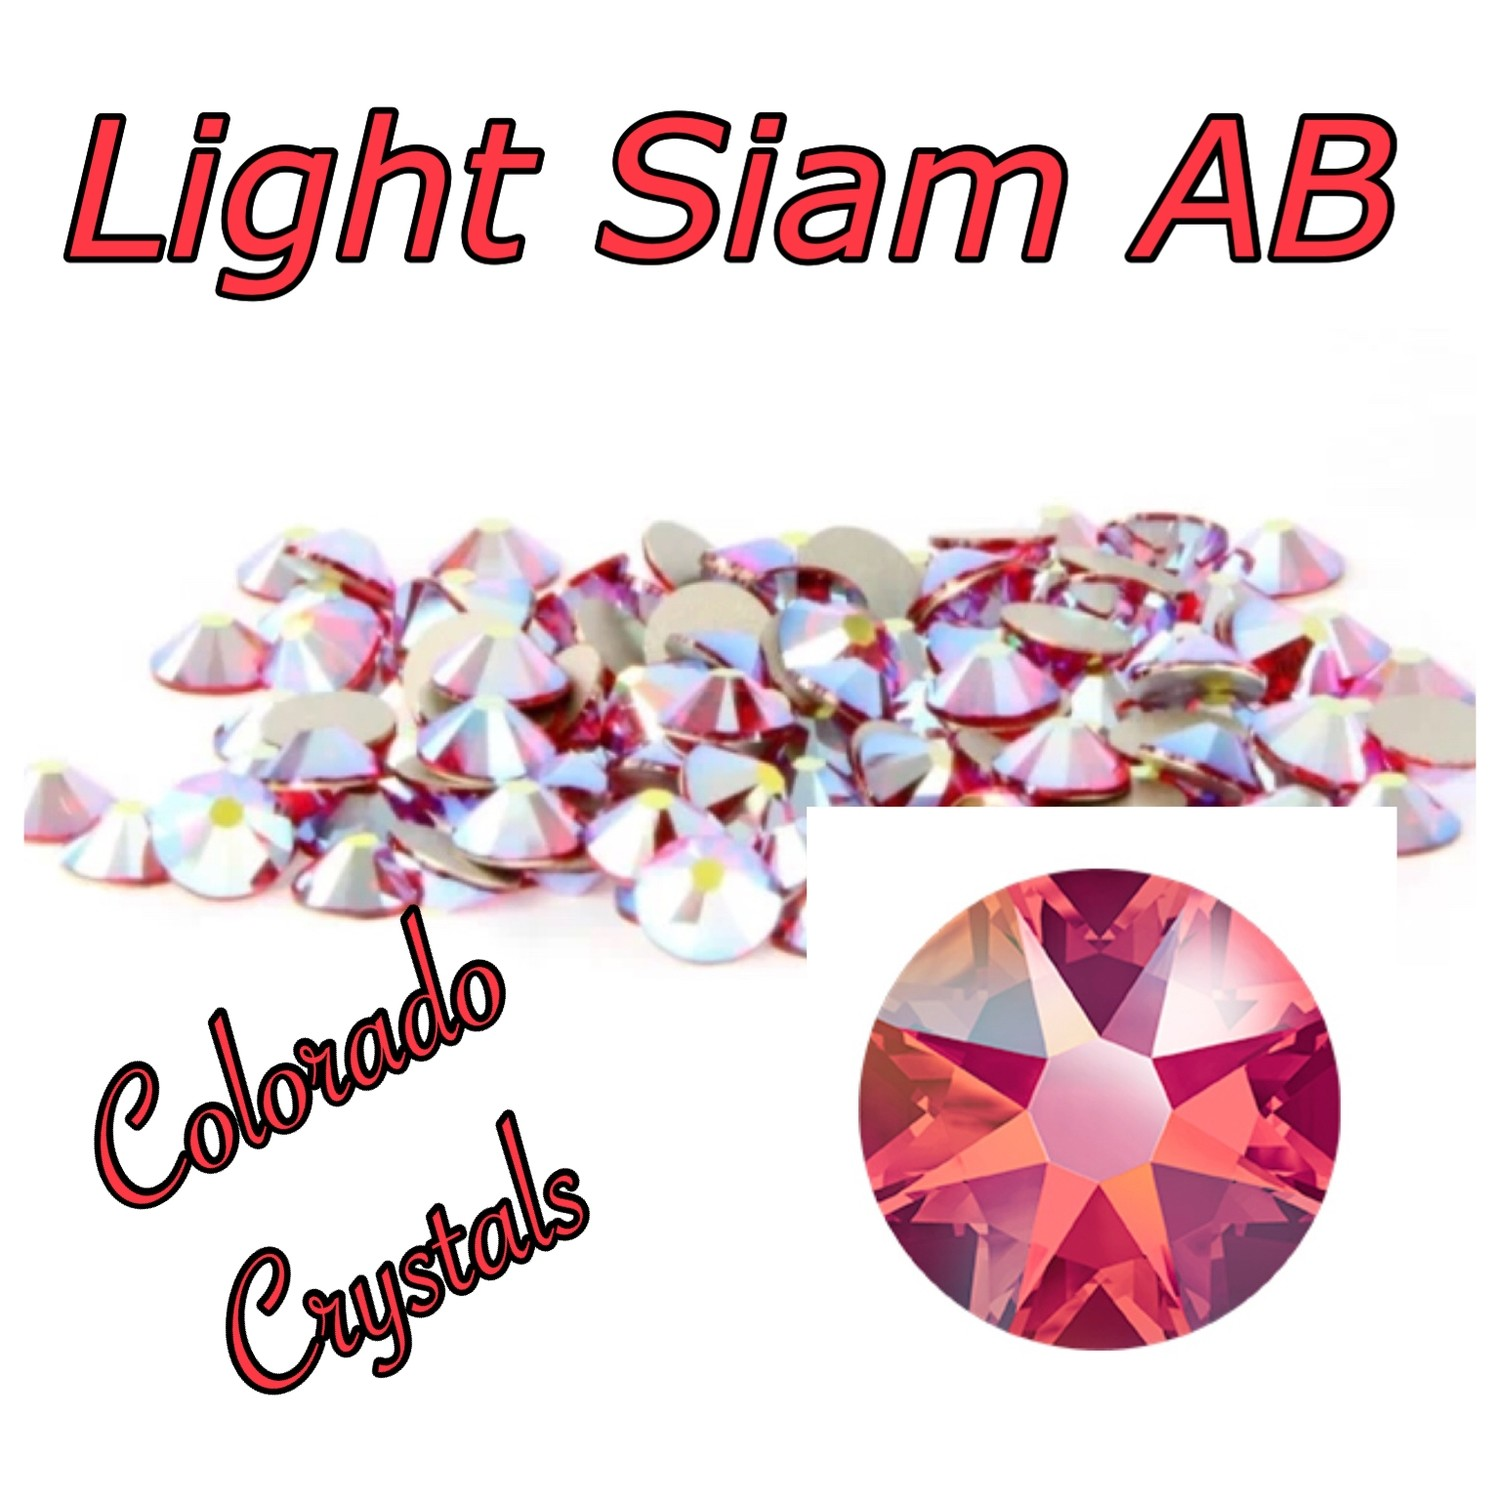 Light Siam AB 9ss 2058 Limited